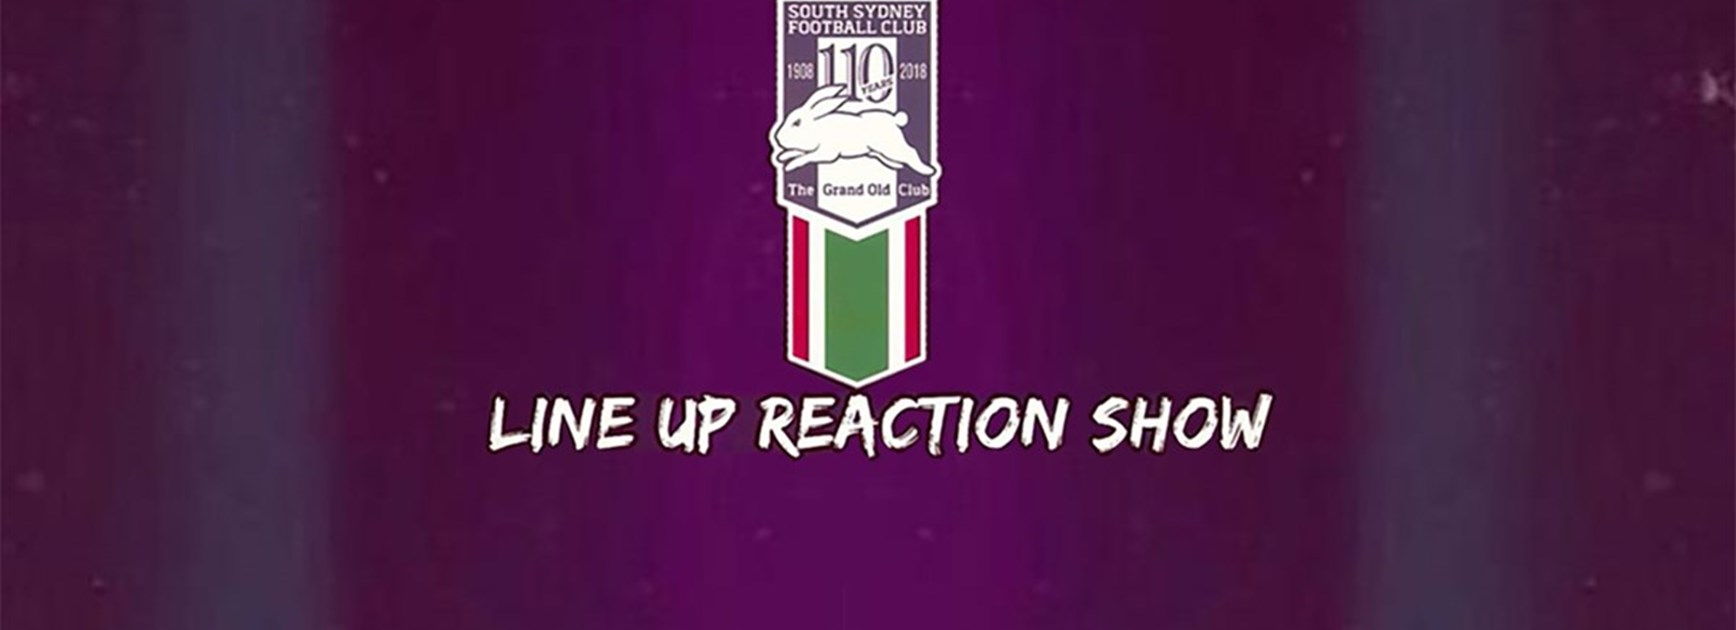 Line Up Reaction Show - Rnd 8 Broncos